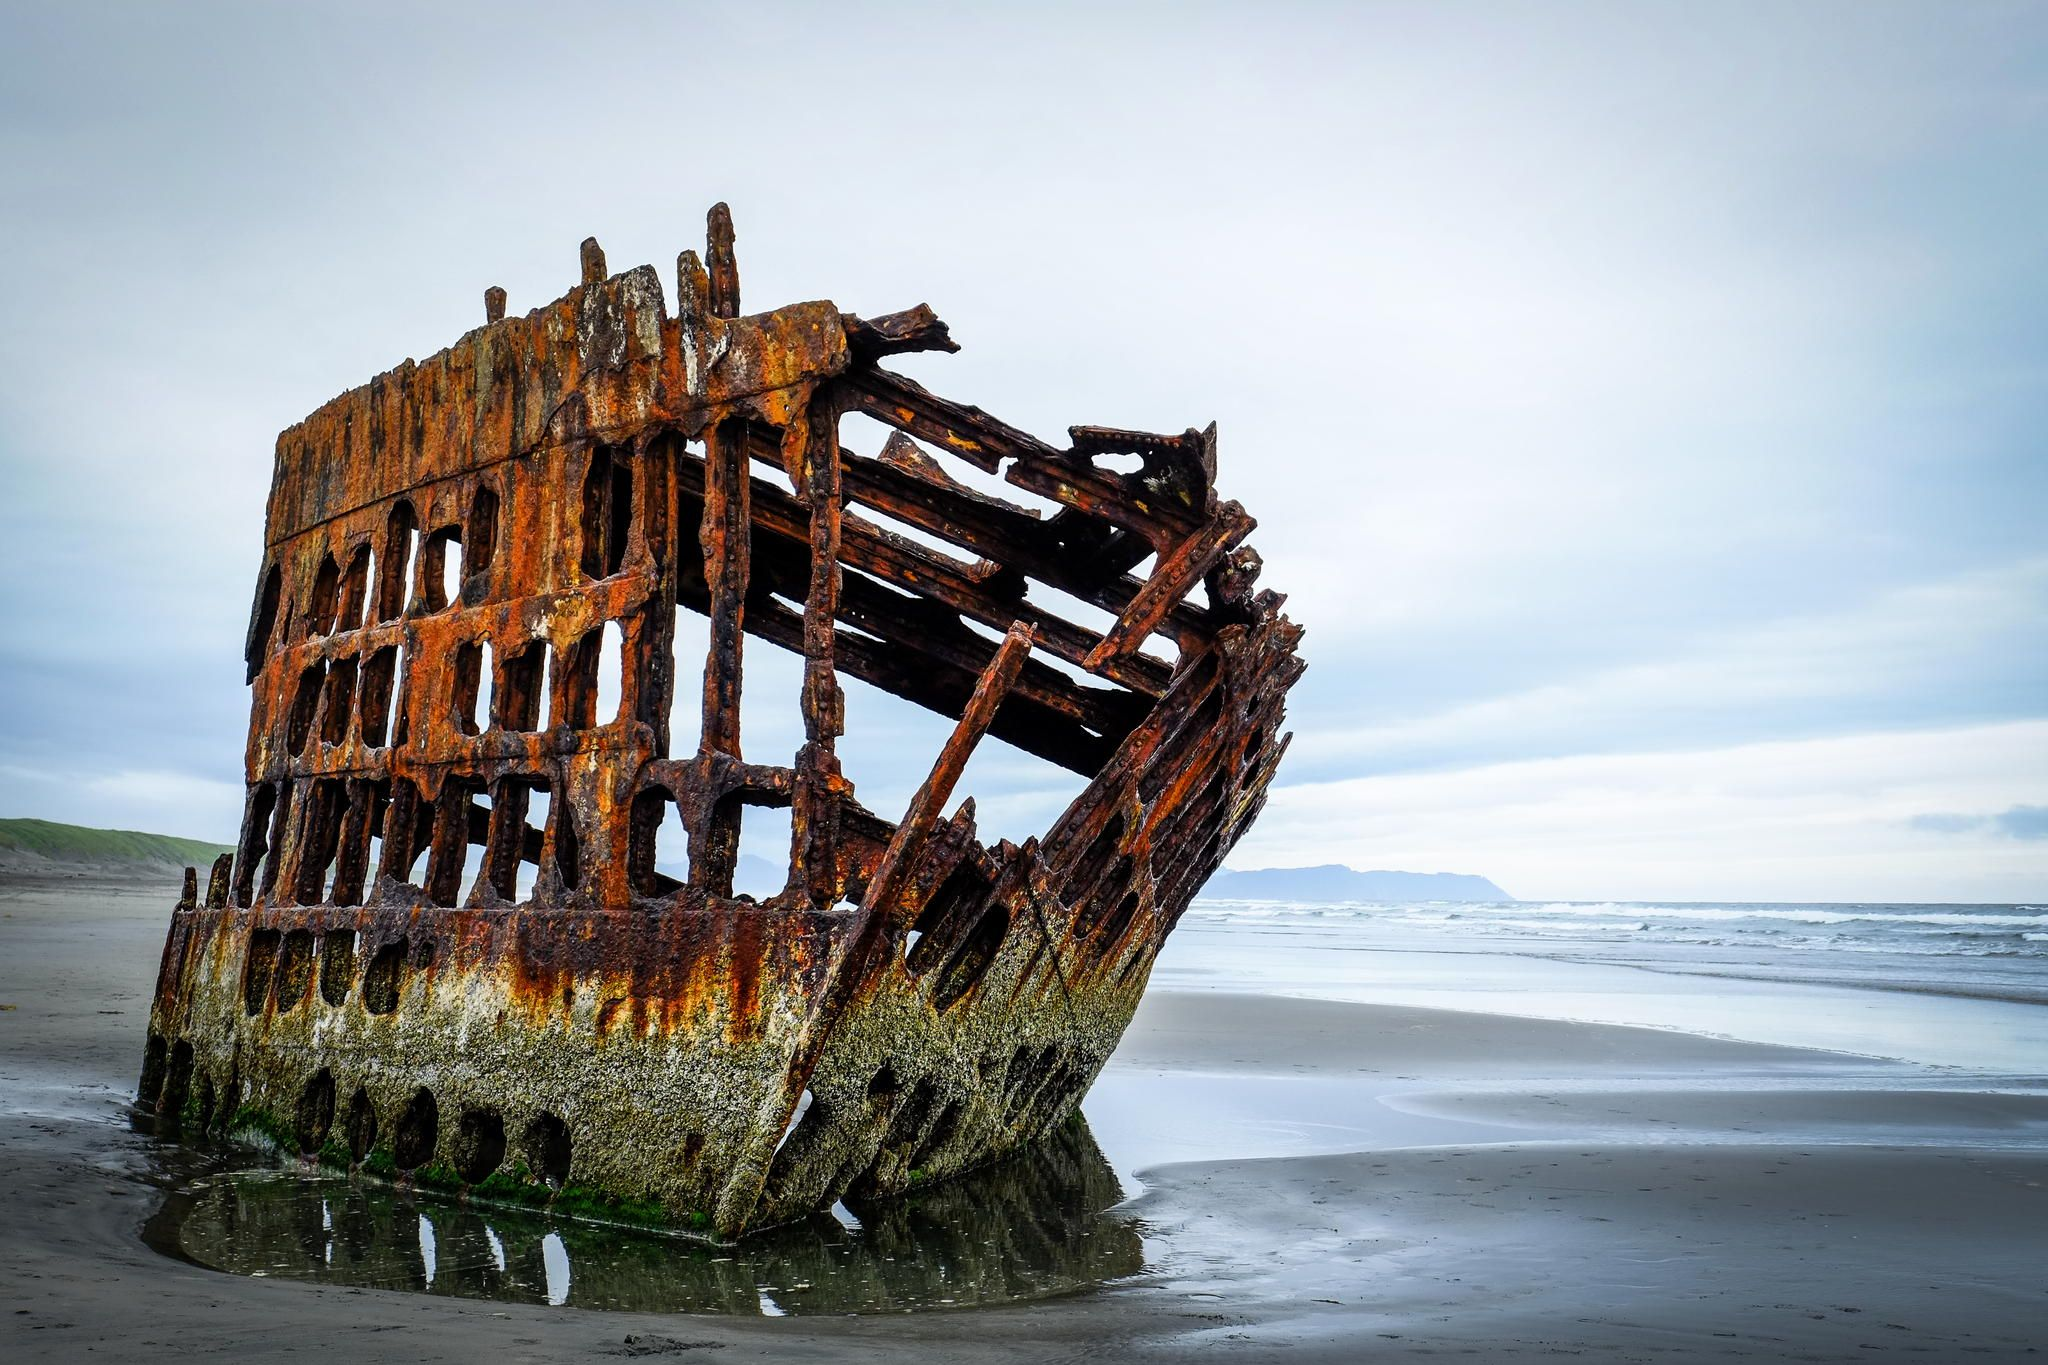 Photograph Wreck of the Peter Iredale by M. T. Harmon on